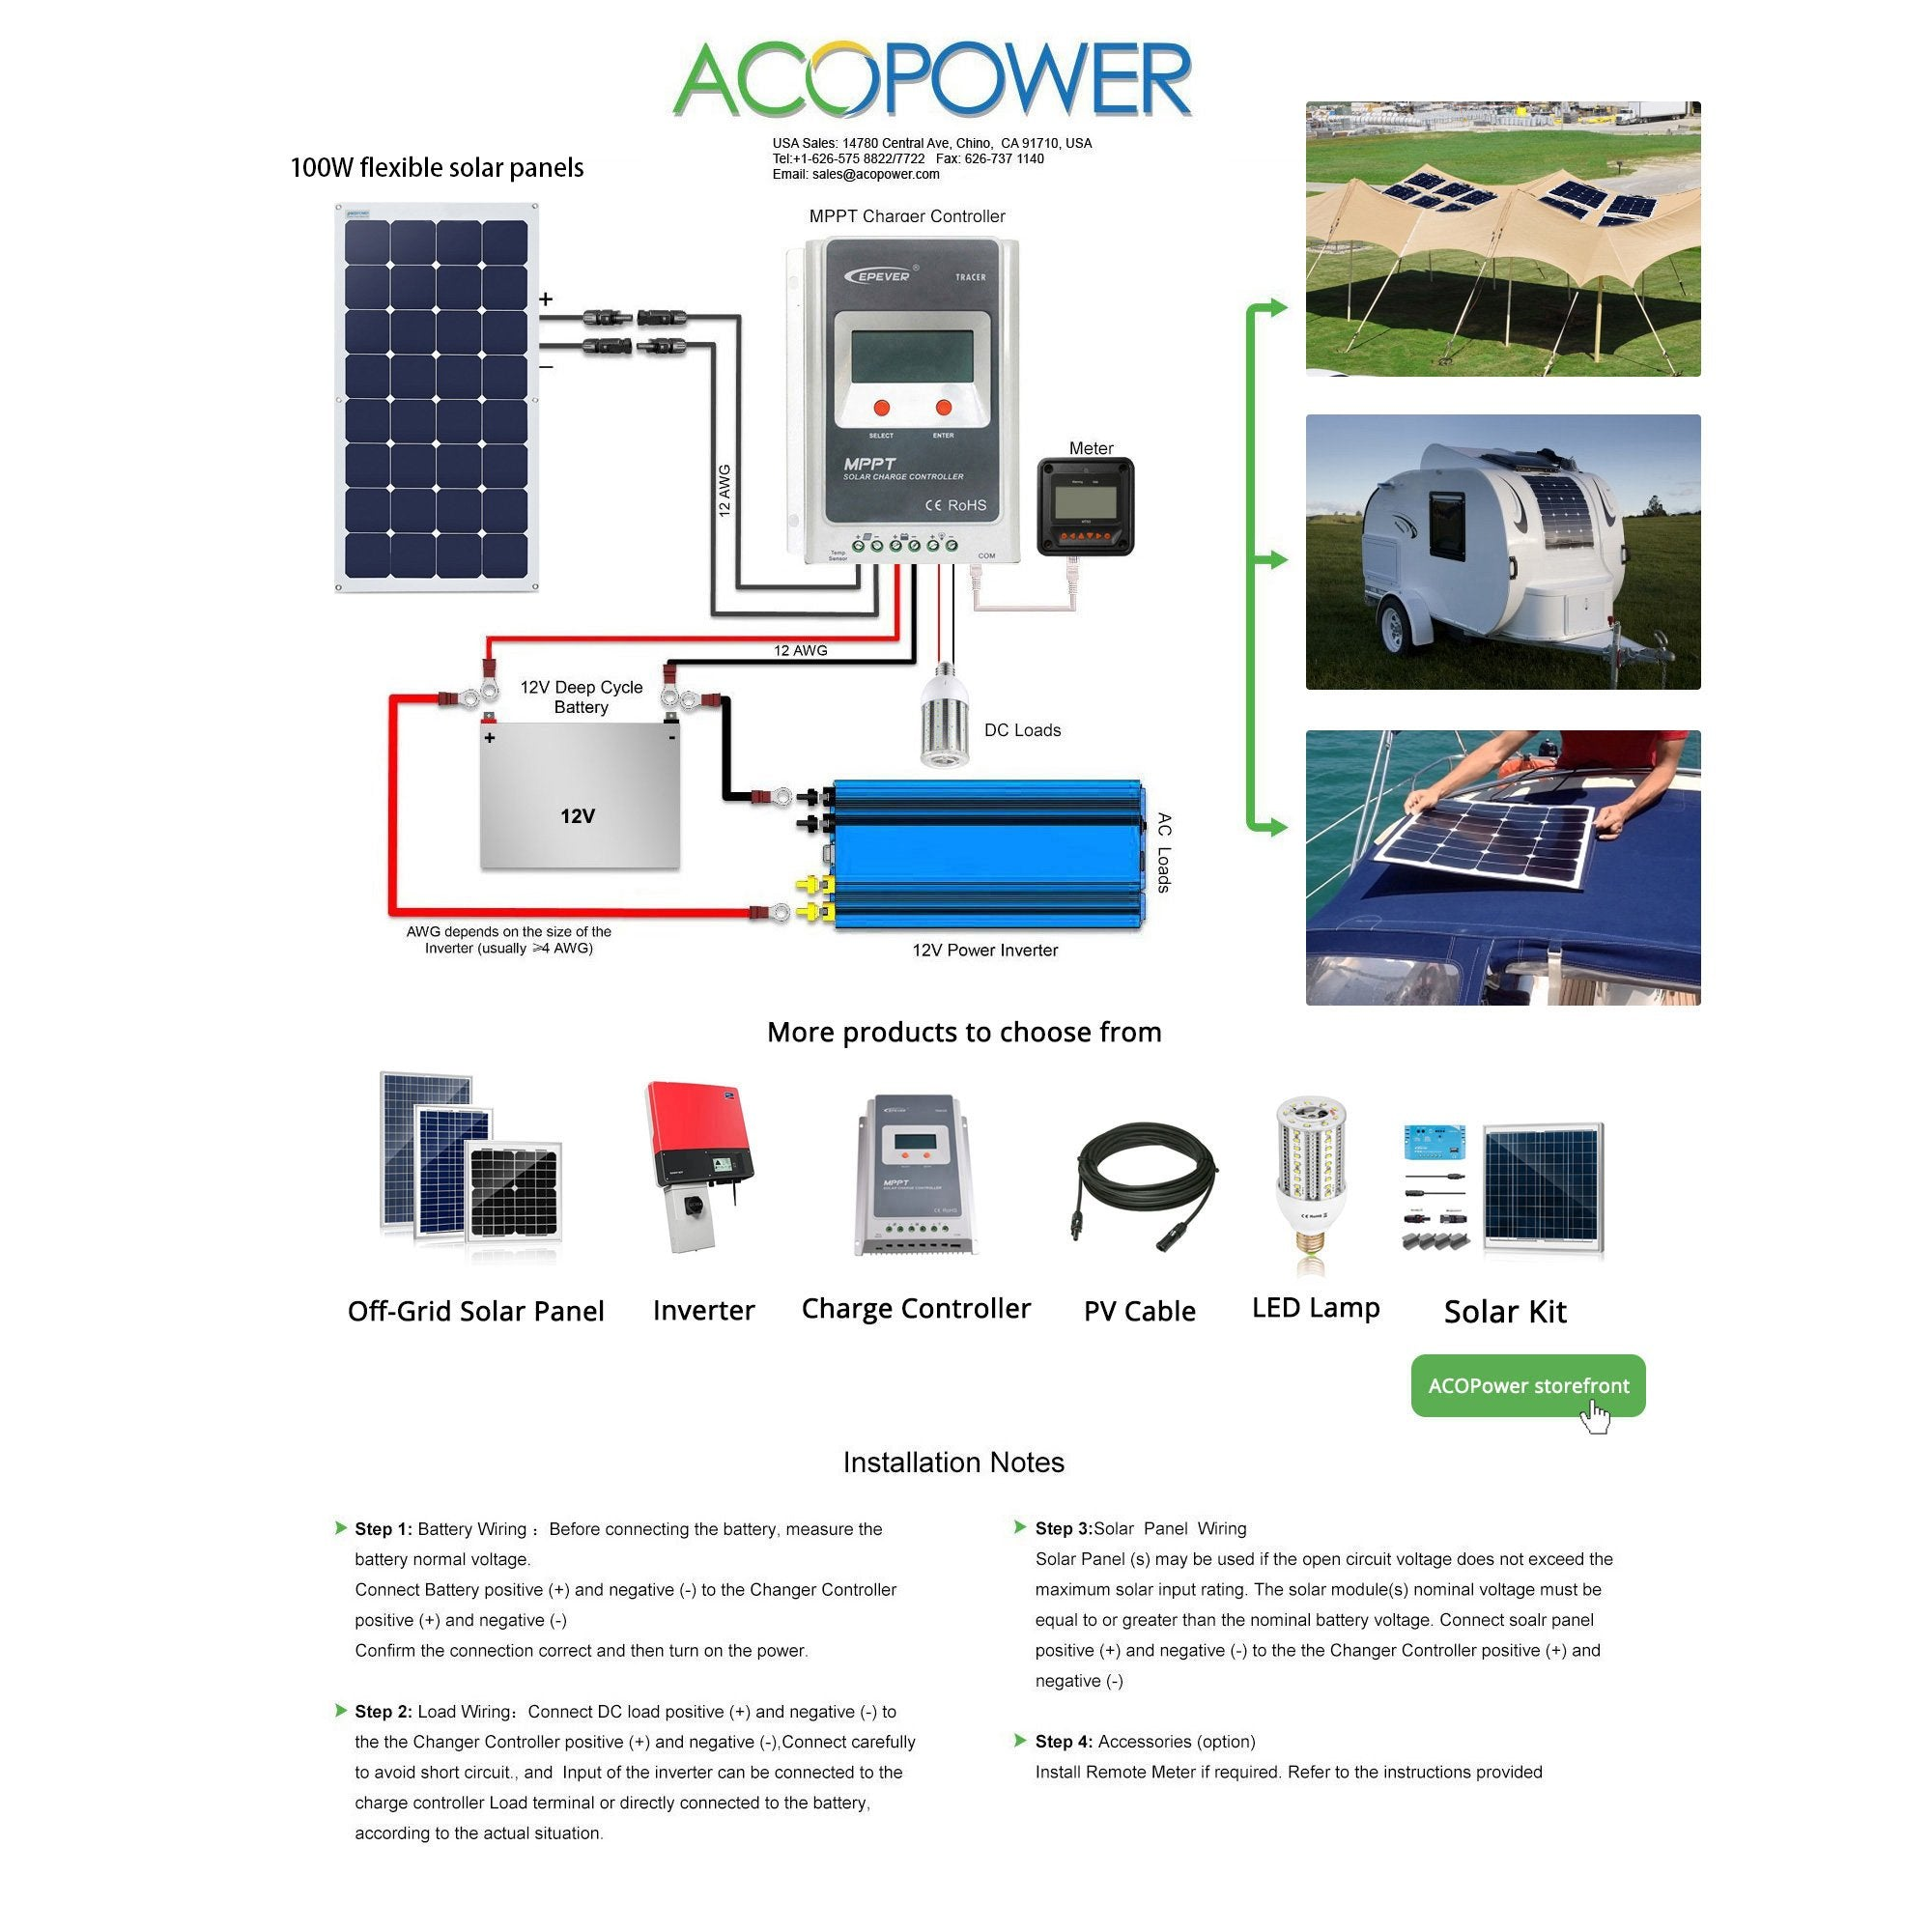 ACOPOWER 110W Flexible Solar Panel - acopower